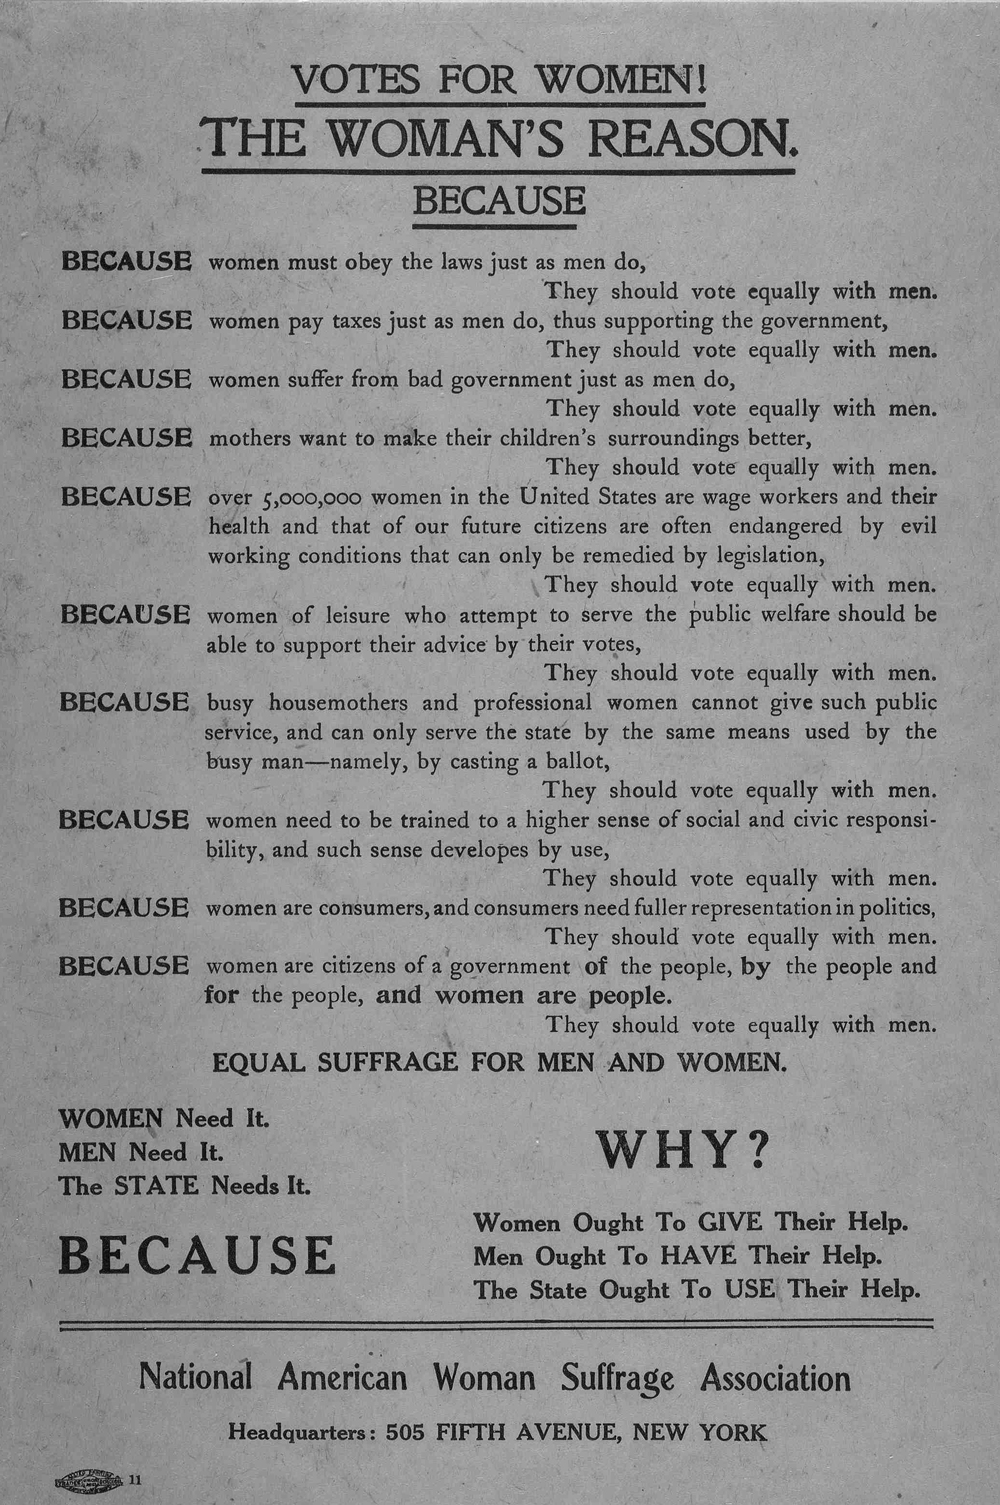 In this 1912 broadside published in New York City by the National American Woman Suffrage Association, ten reasons why women should vote equally with men are listed.